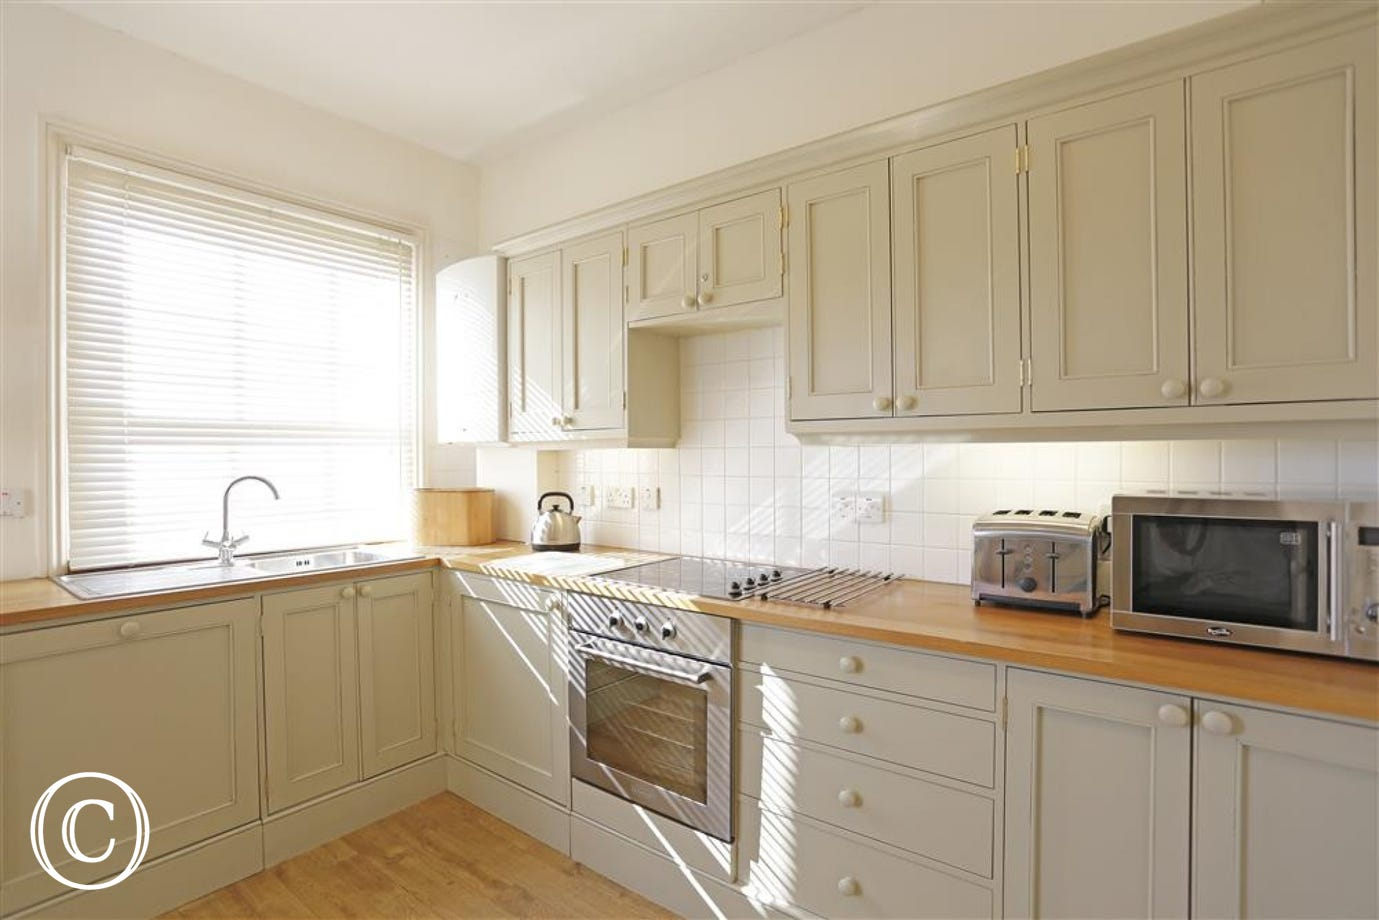 This modern kitchen will cater for all your self-catering needs.